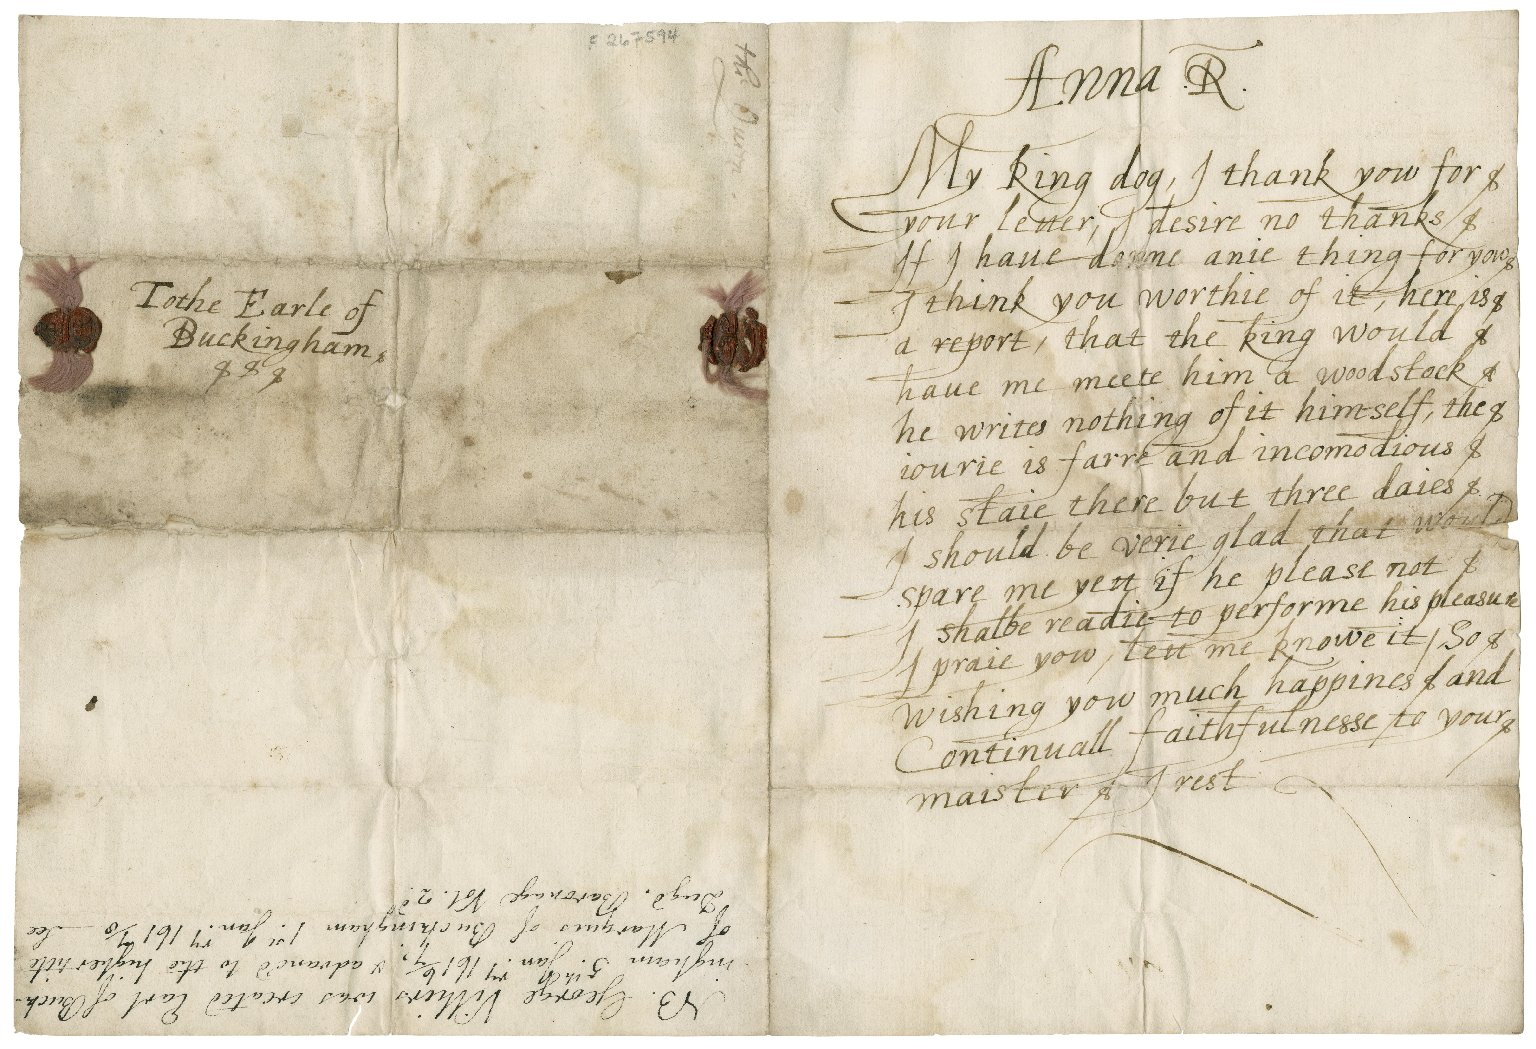 """Autograph letter signed """"Anna R"""" [manuscript] : to the future Duke of Buckingham """"My king dog"""", the letter addressed """"To the Earle of Buckingham""""."""